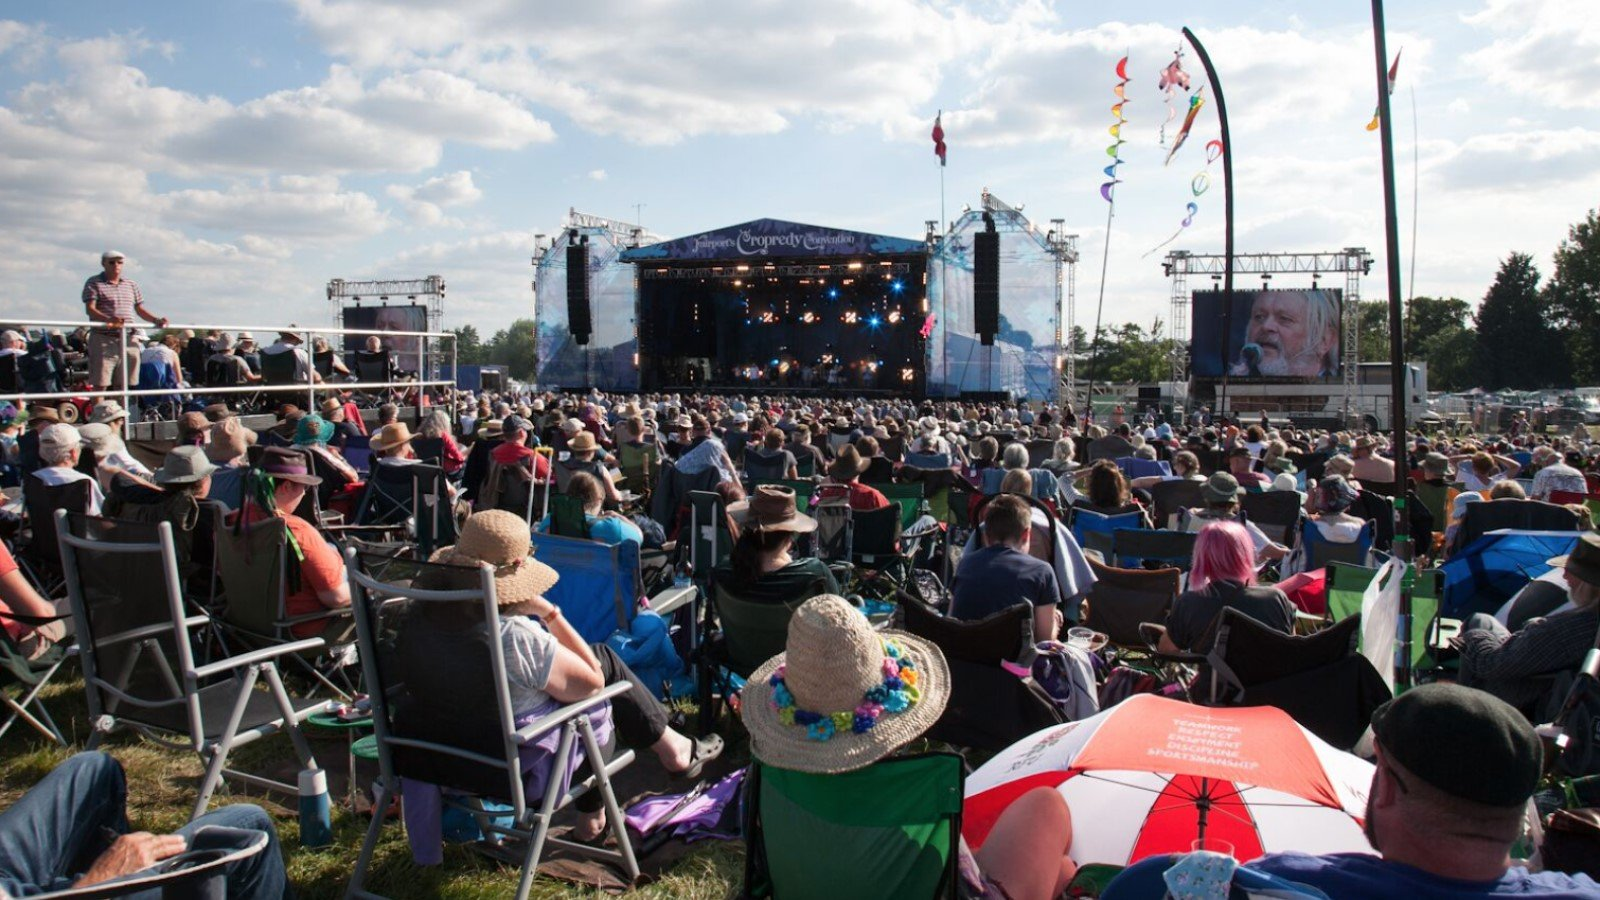 Fairport Cropredy Convention 2021